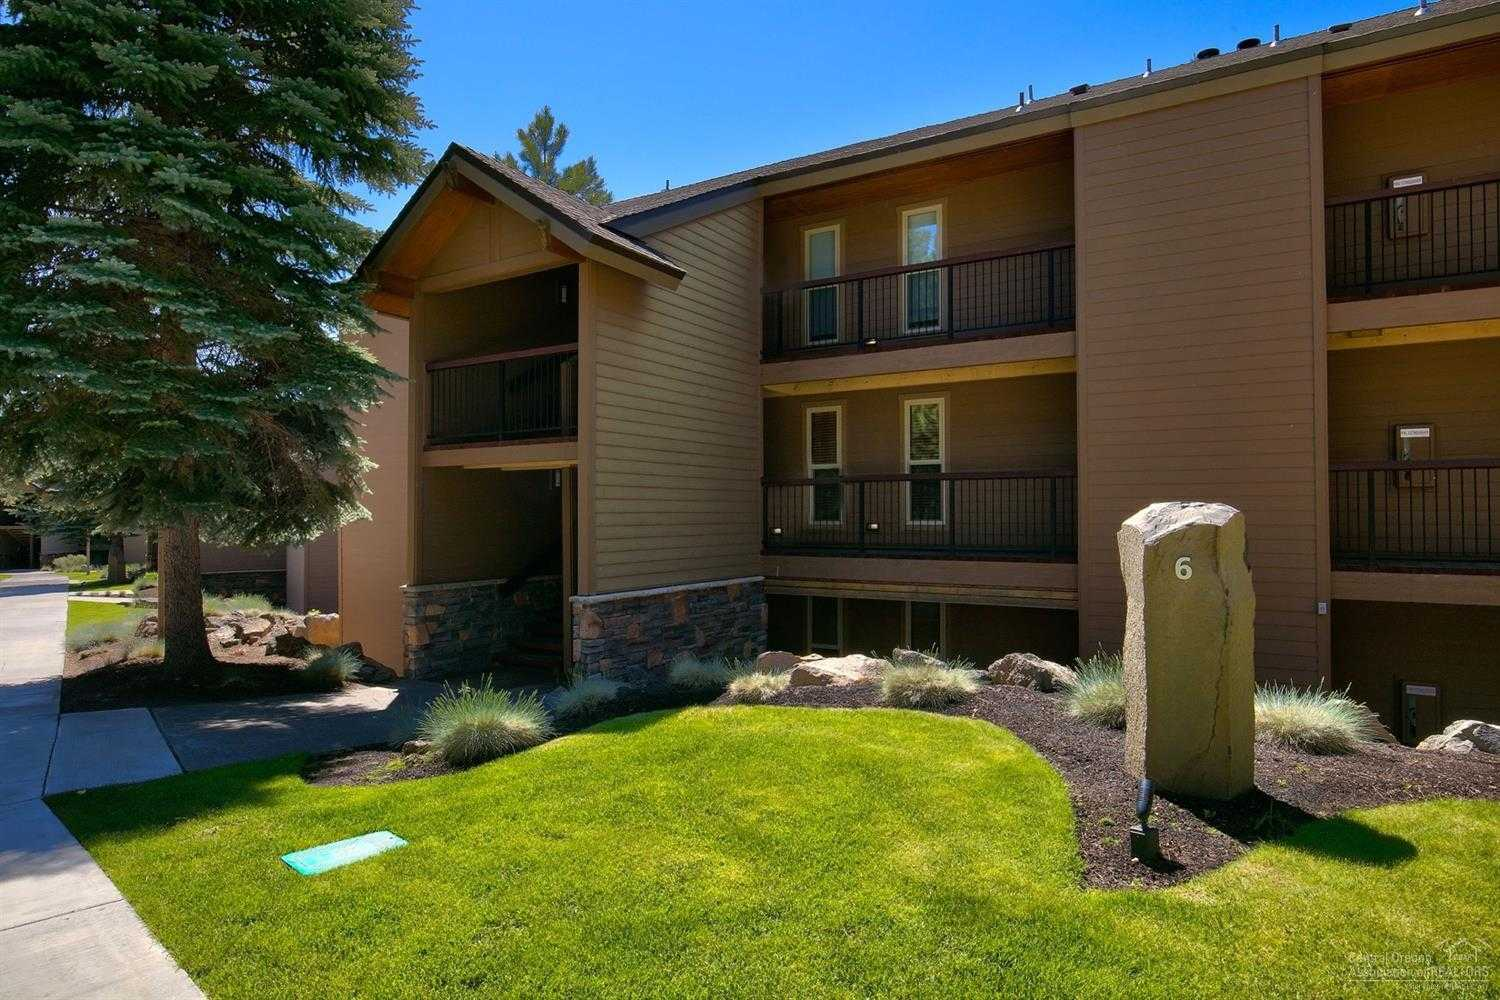 $150,000 - 1Br/1Ba -  for Sale in Bend